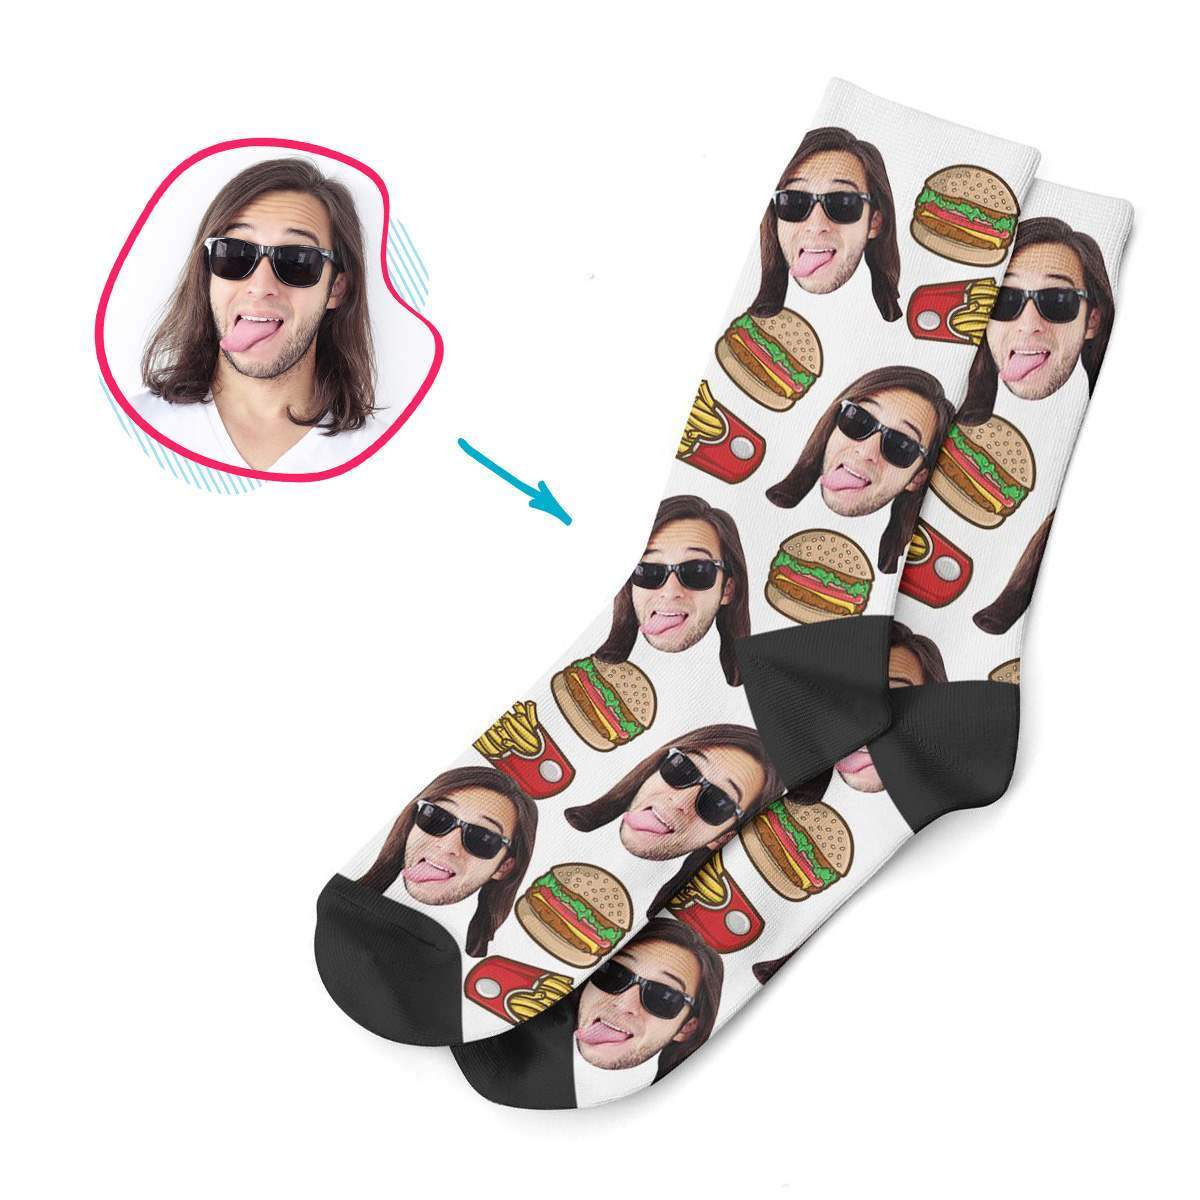 white Fastfood socks personalized with photo of face printed on them